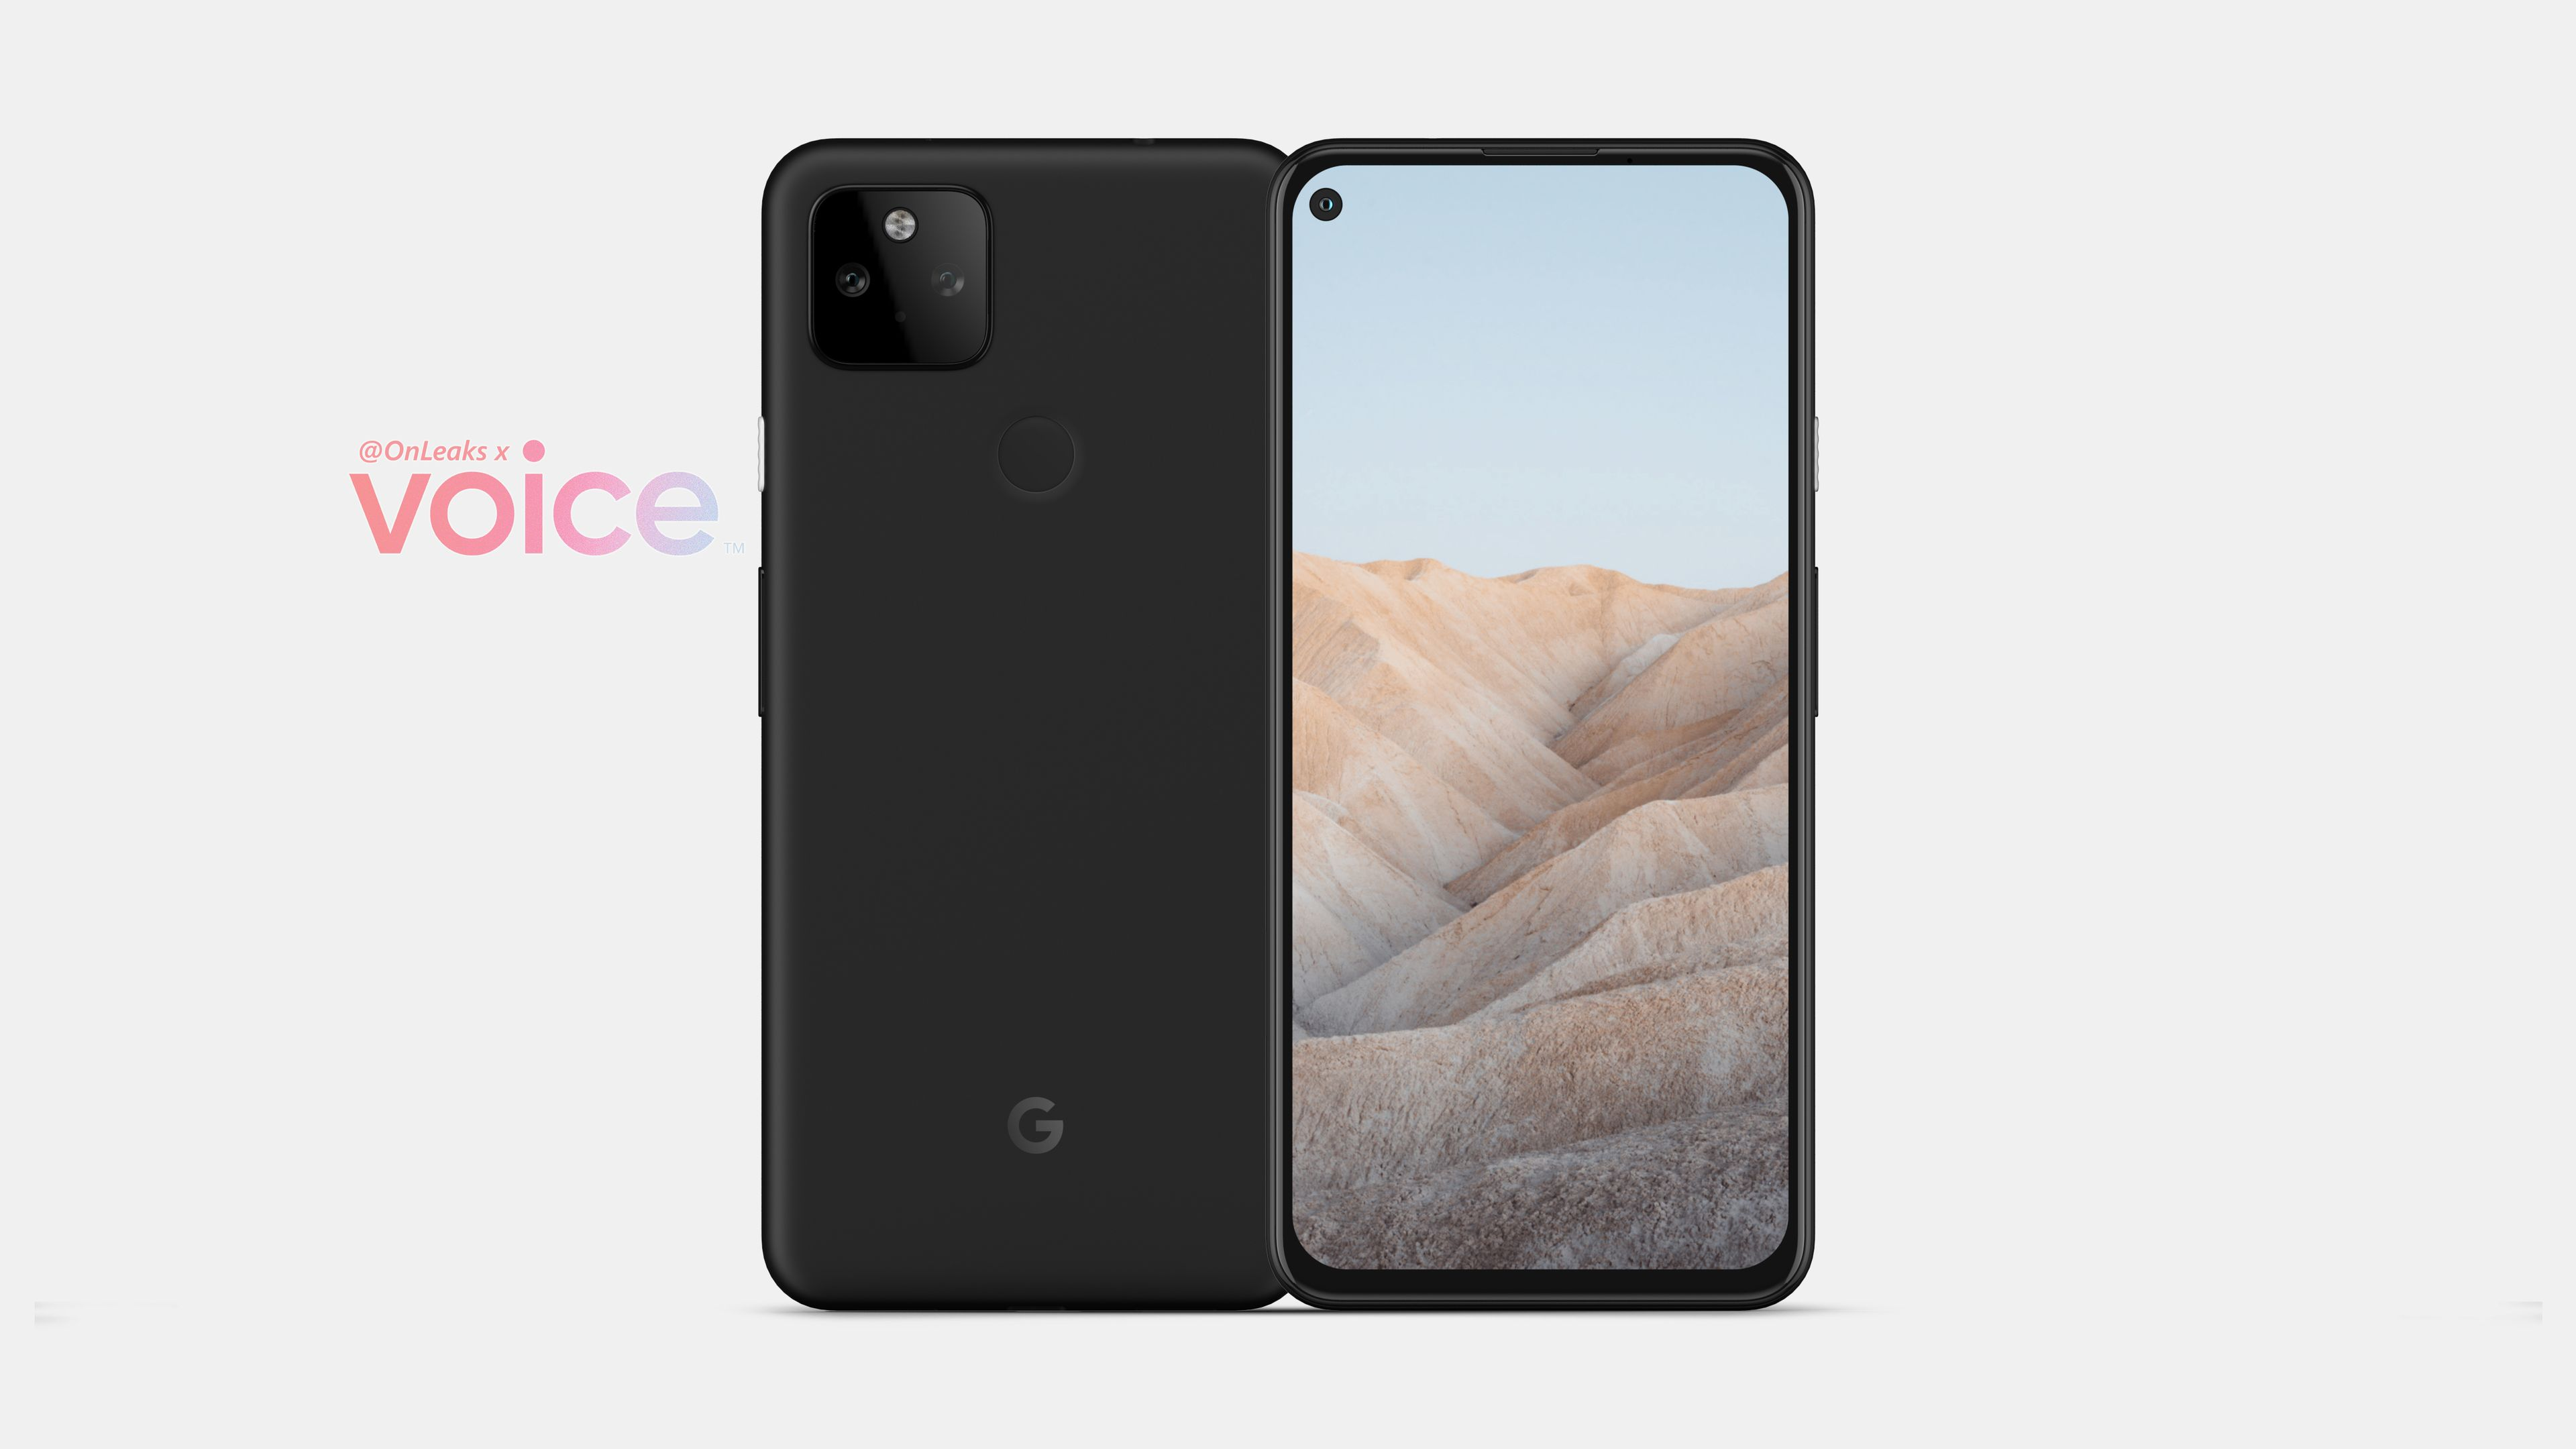 Google Pixel 5a front and back side by side